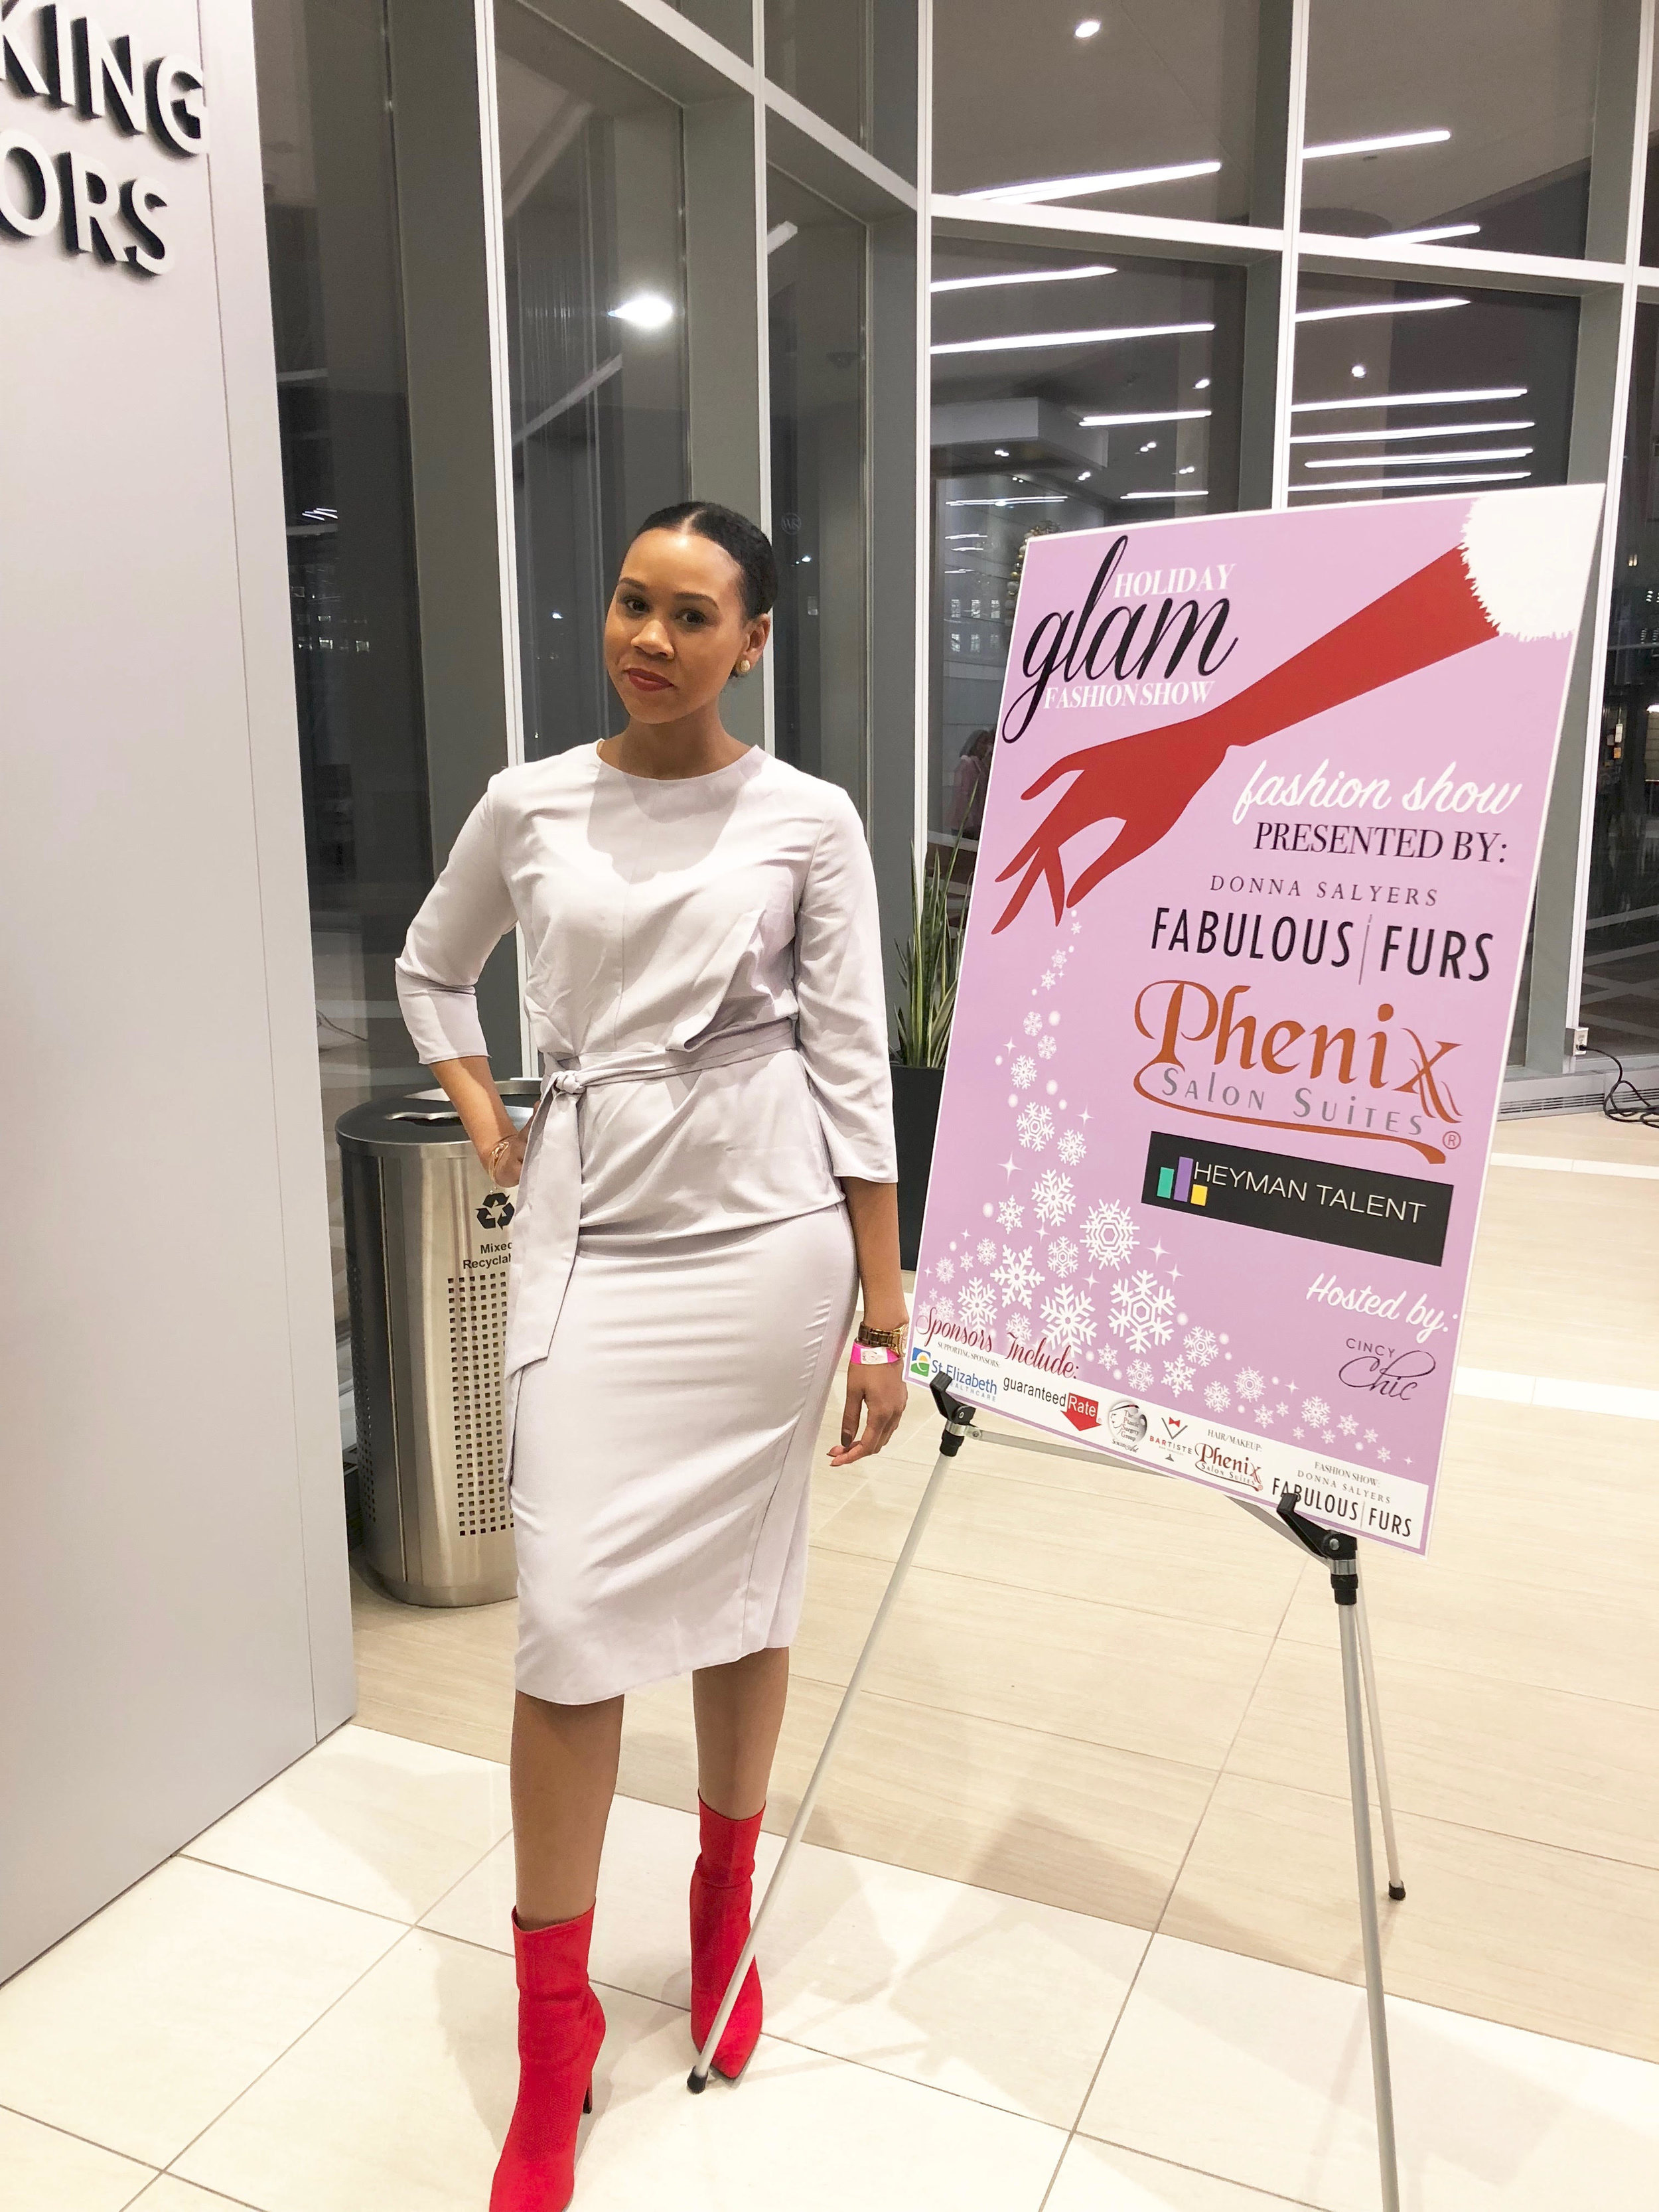 2018 Holiday Glam Fashion Show featuring Donna Salyers Fabulous Furs hosted by Cincy Chic Magazine